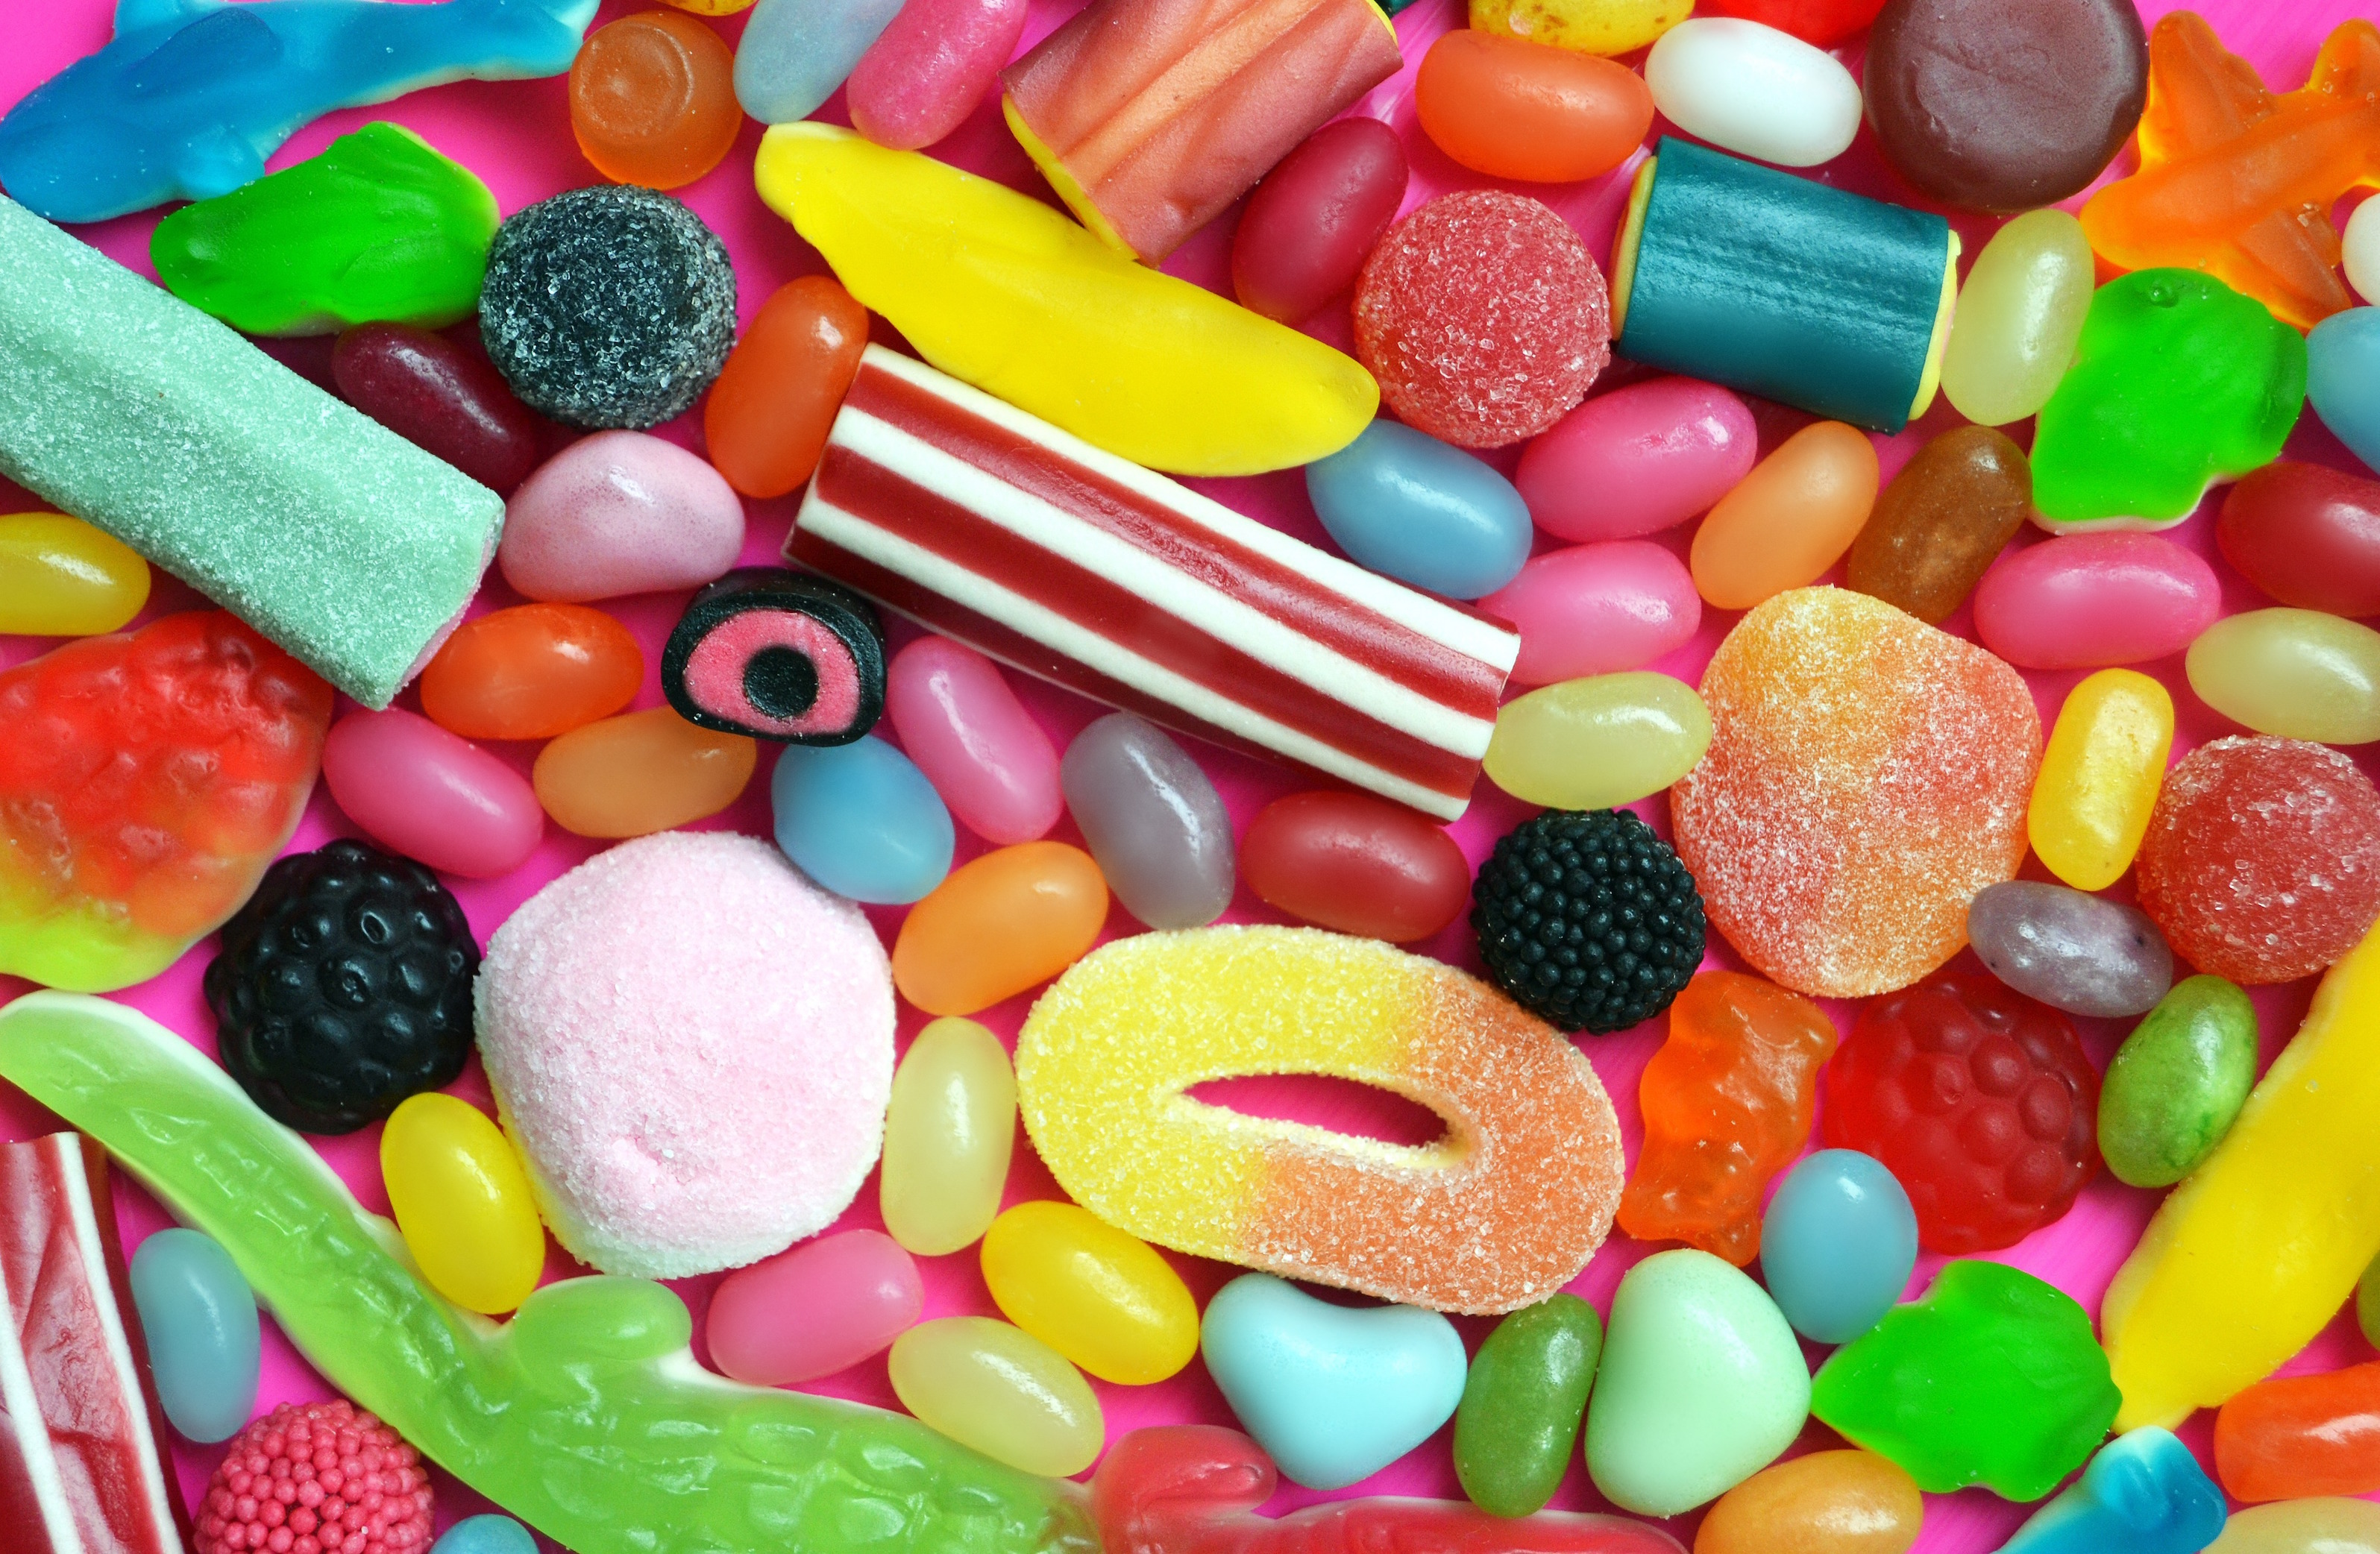 Imported candy tops the California contaminated foods list